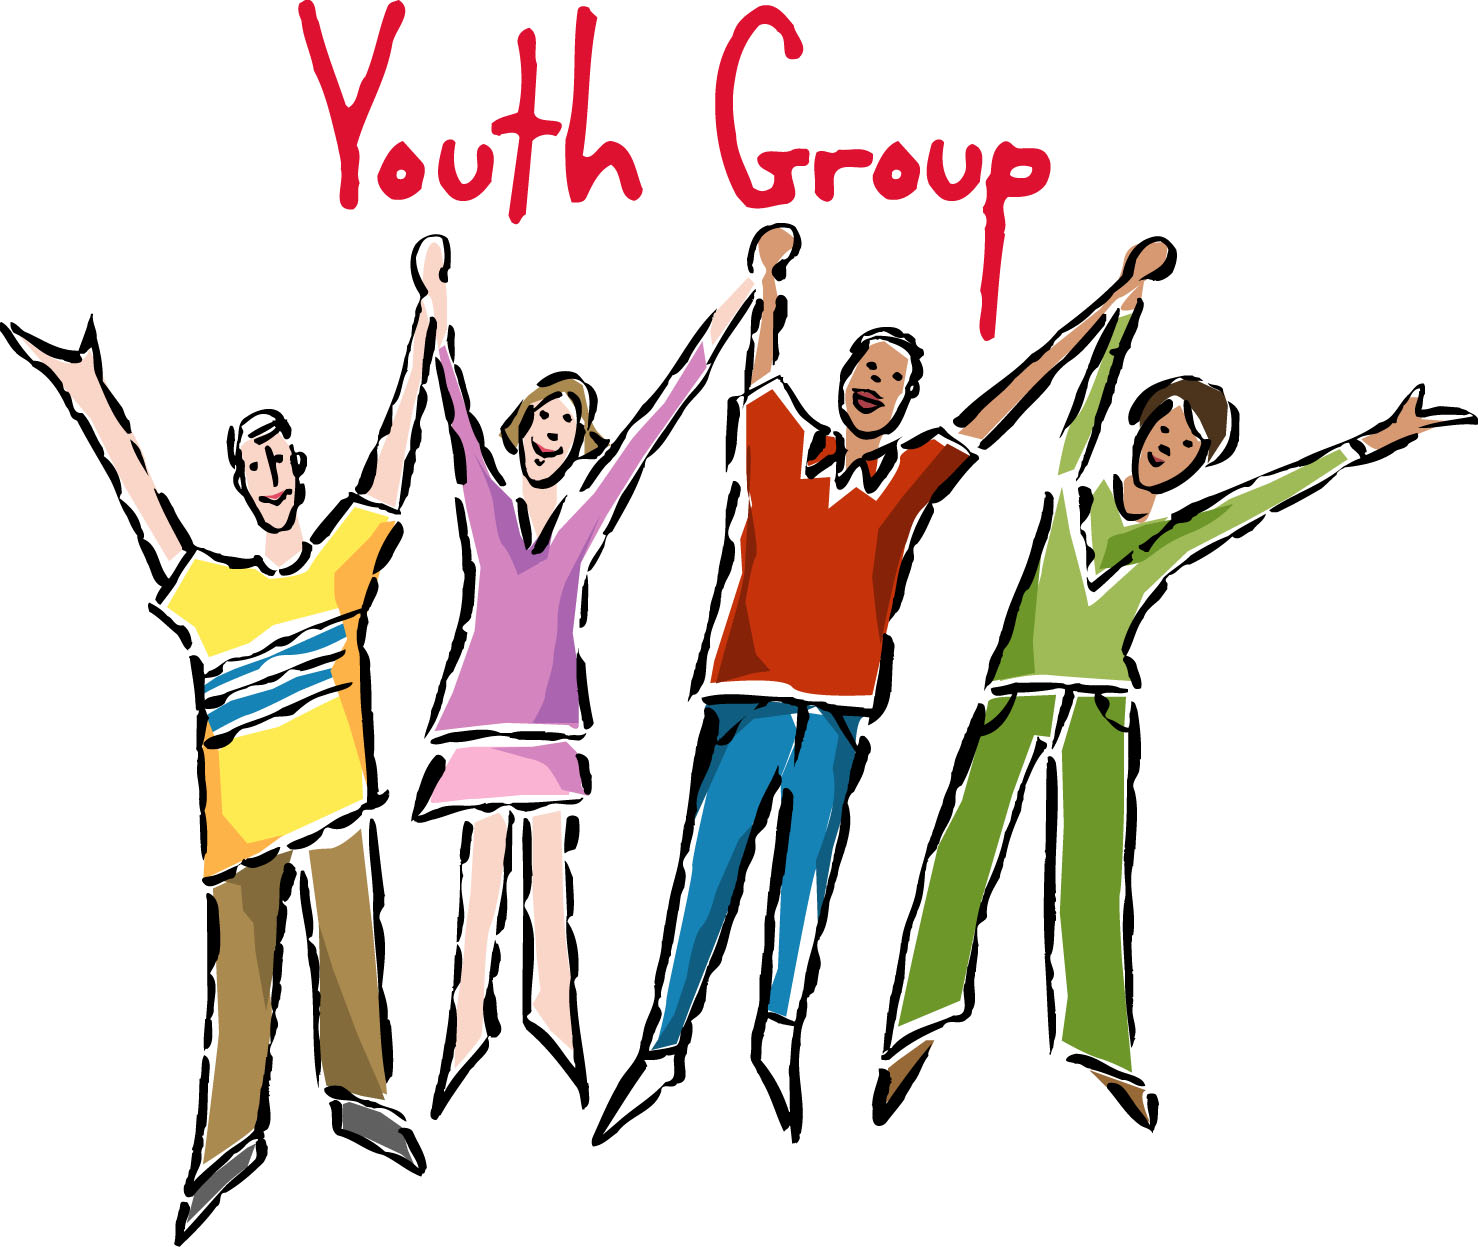 Youth Ministry Clip Art - ClipArt Best-Youth Ministry Clip Art - ClipArt Best-15